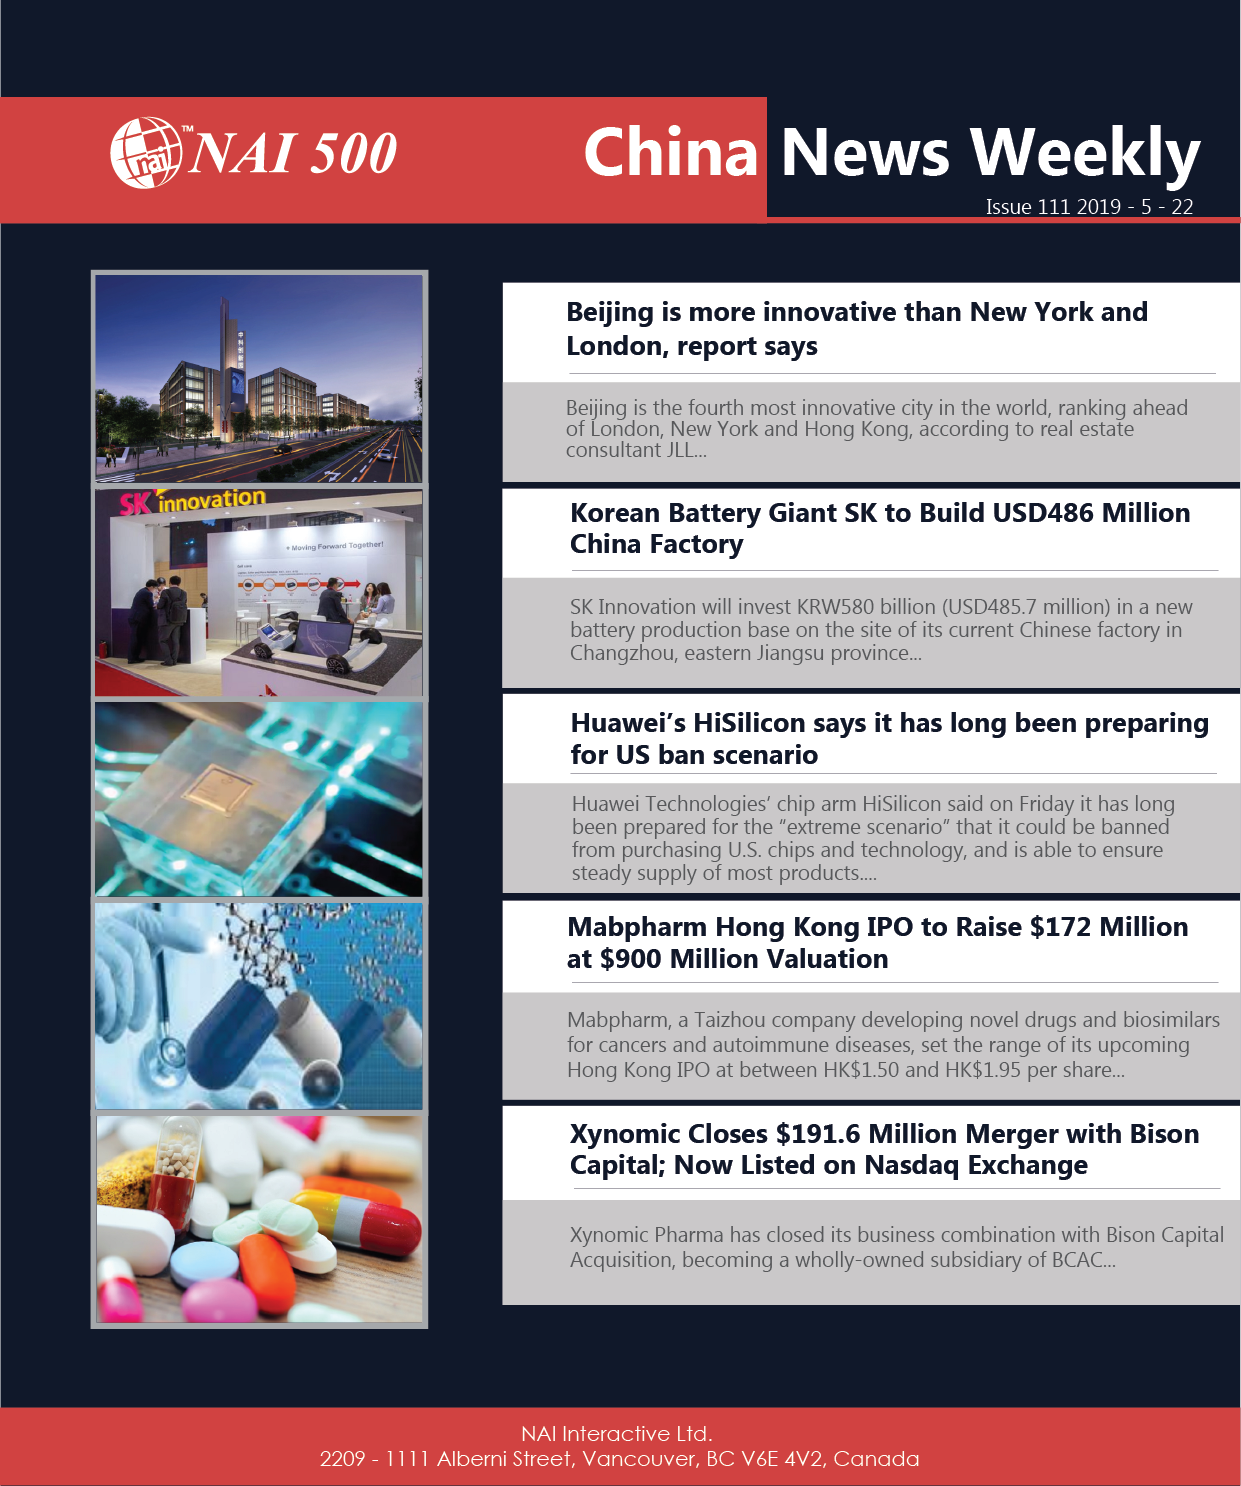 China News Weekly 111 - Beijing is more innovative than New York and